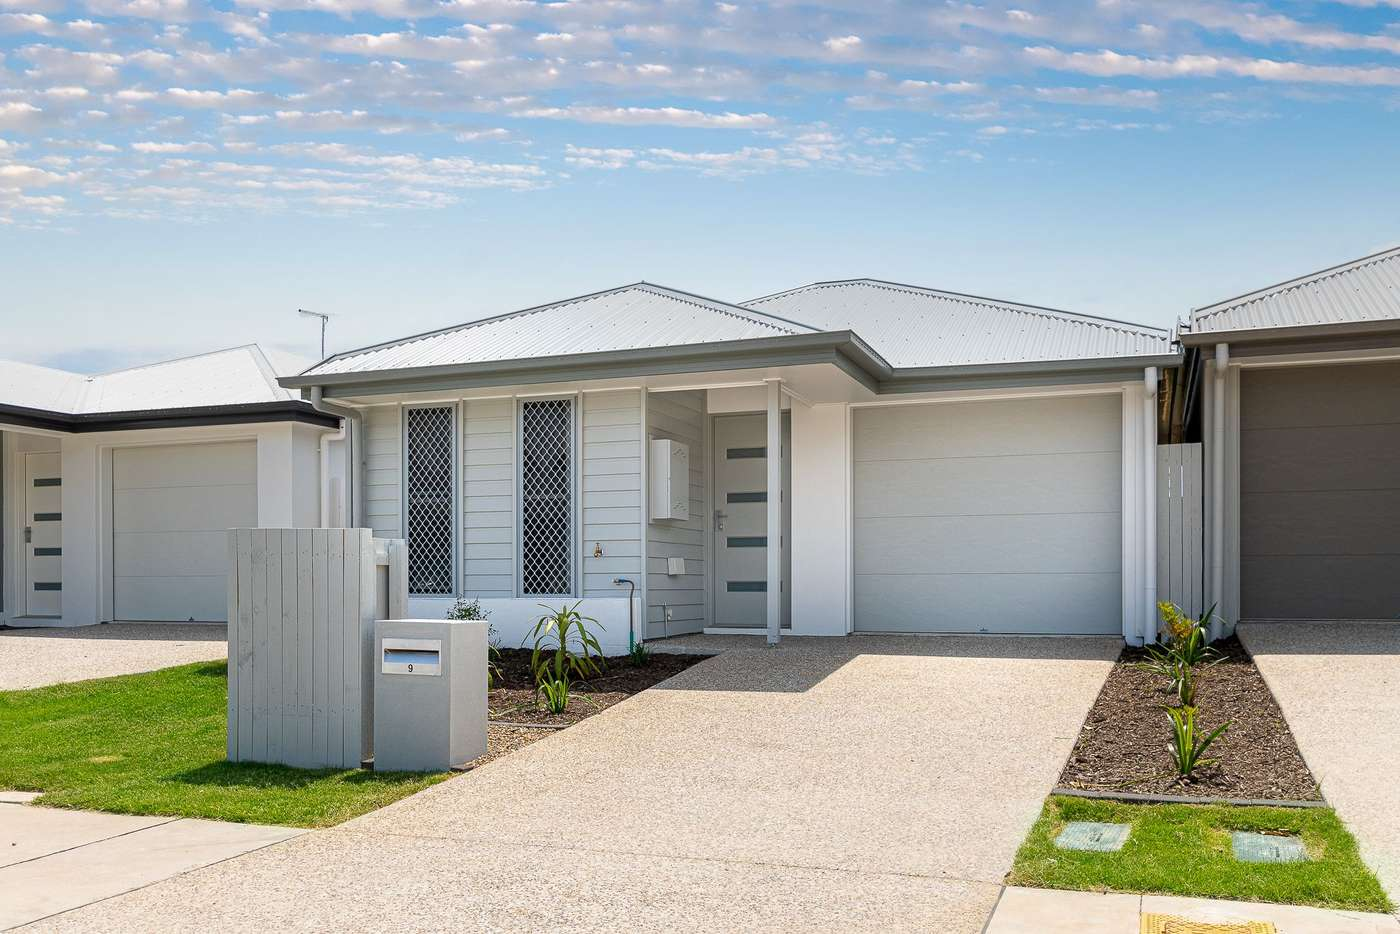 Main view of Homely house listing, 9 Dora Street, Morayfield QLD 4506